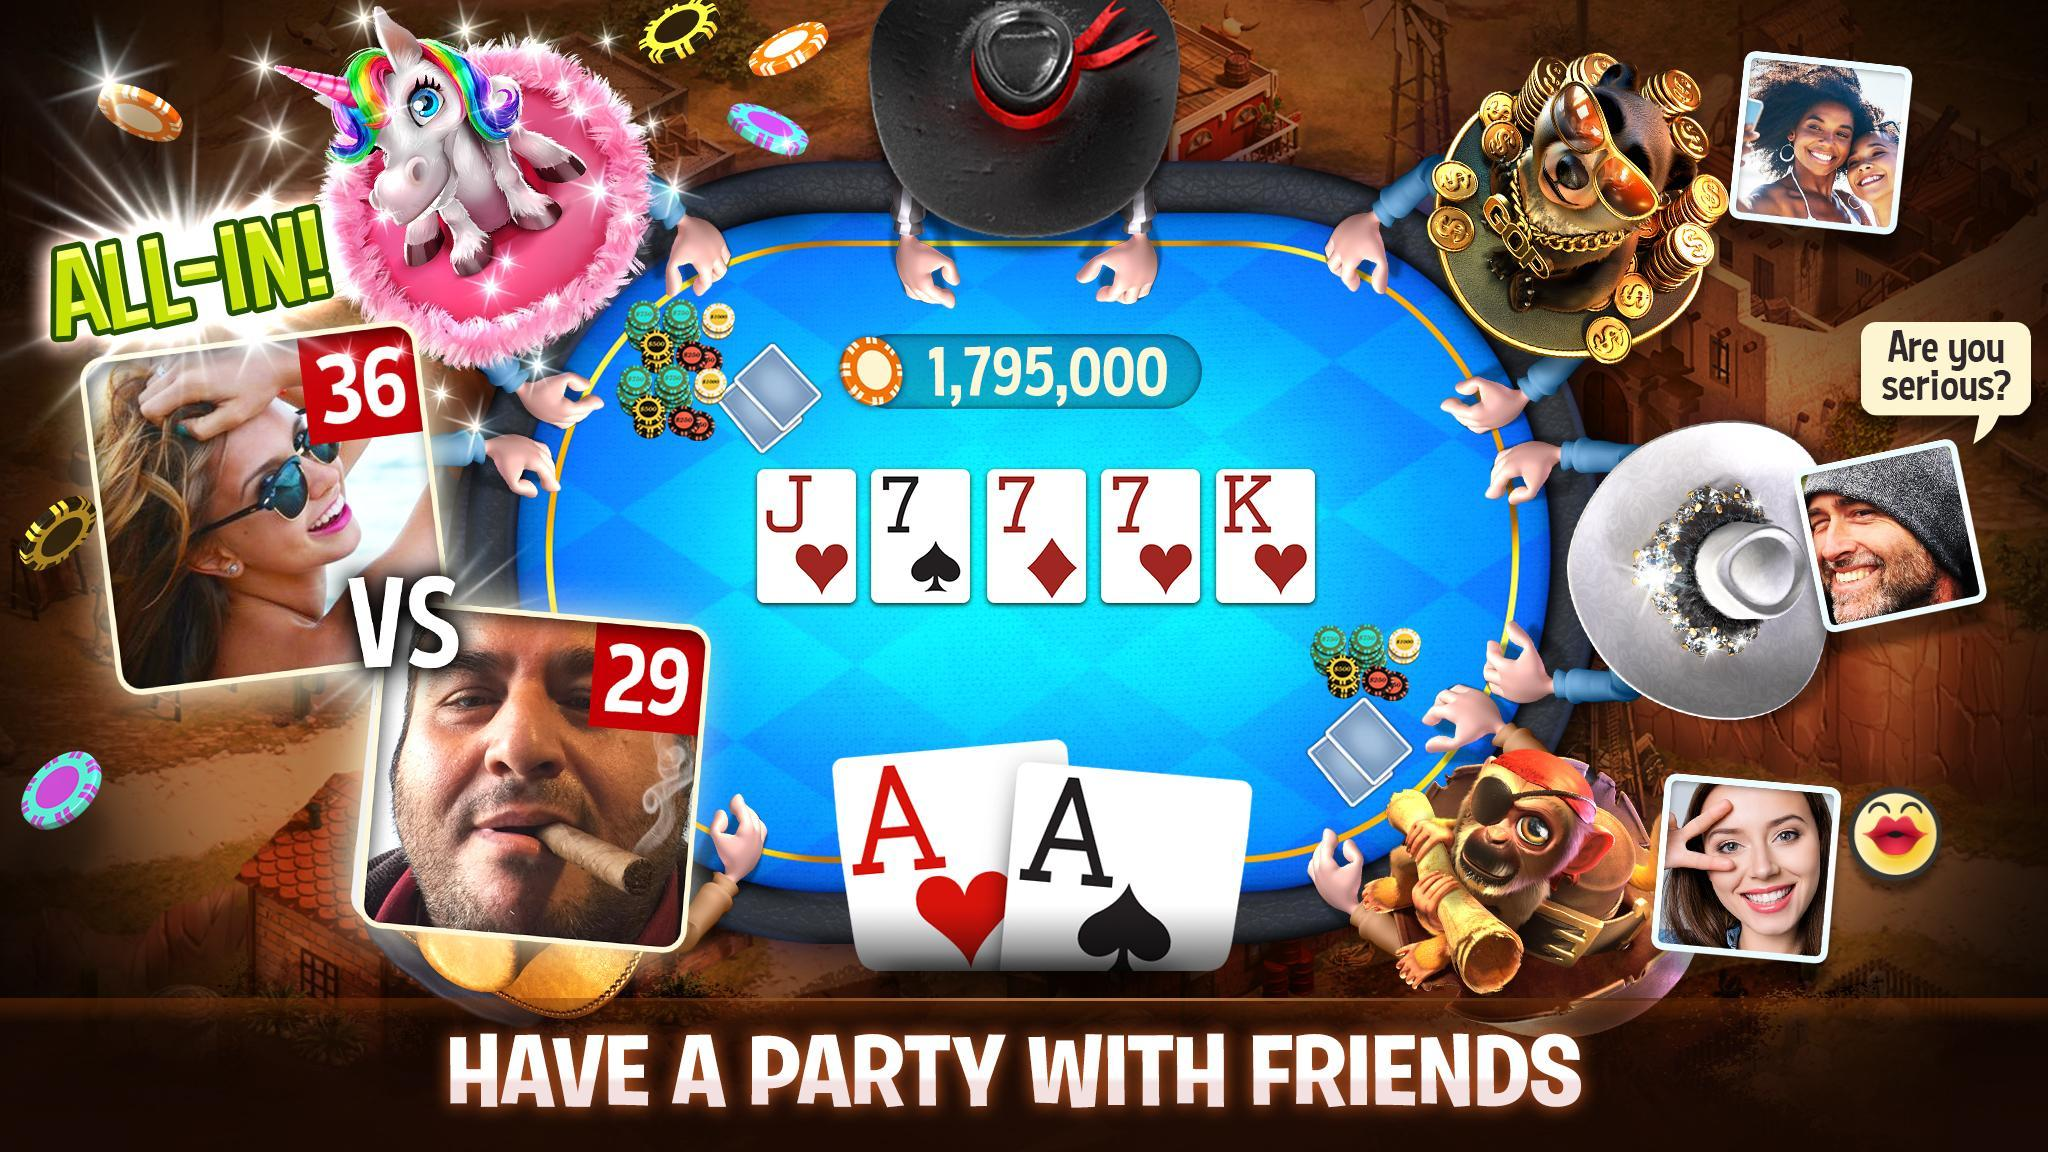 Governor of Poker 3 - Texas Holdem With Friends 6.9.1 Screenshot 8